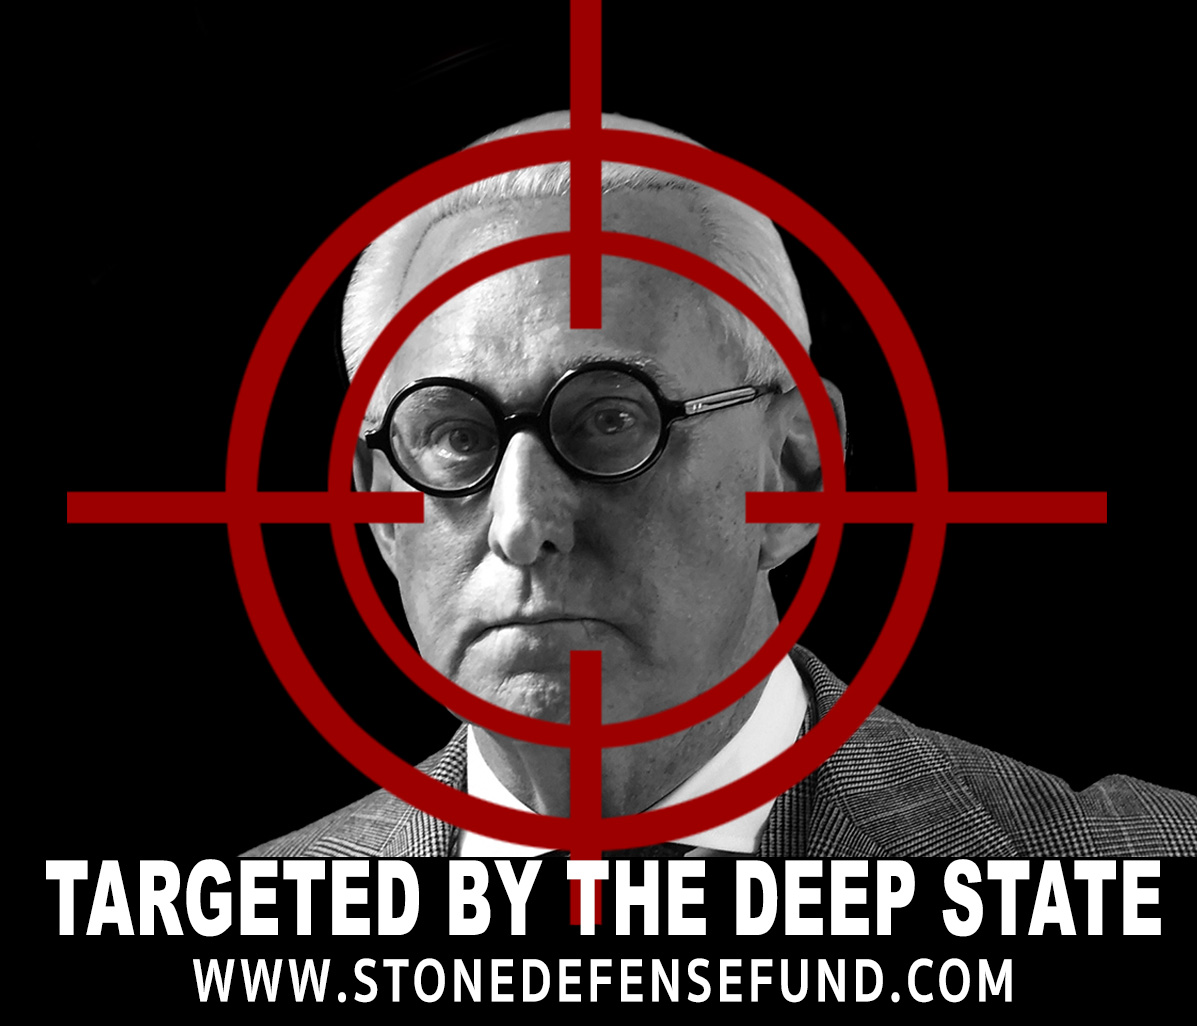 Image: Bombshell: New texts support Roger Stone's claims regarding backchannel to Wikileaks even as Mueller still targeting him